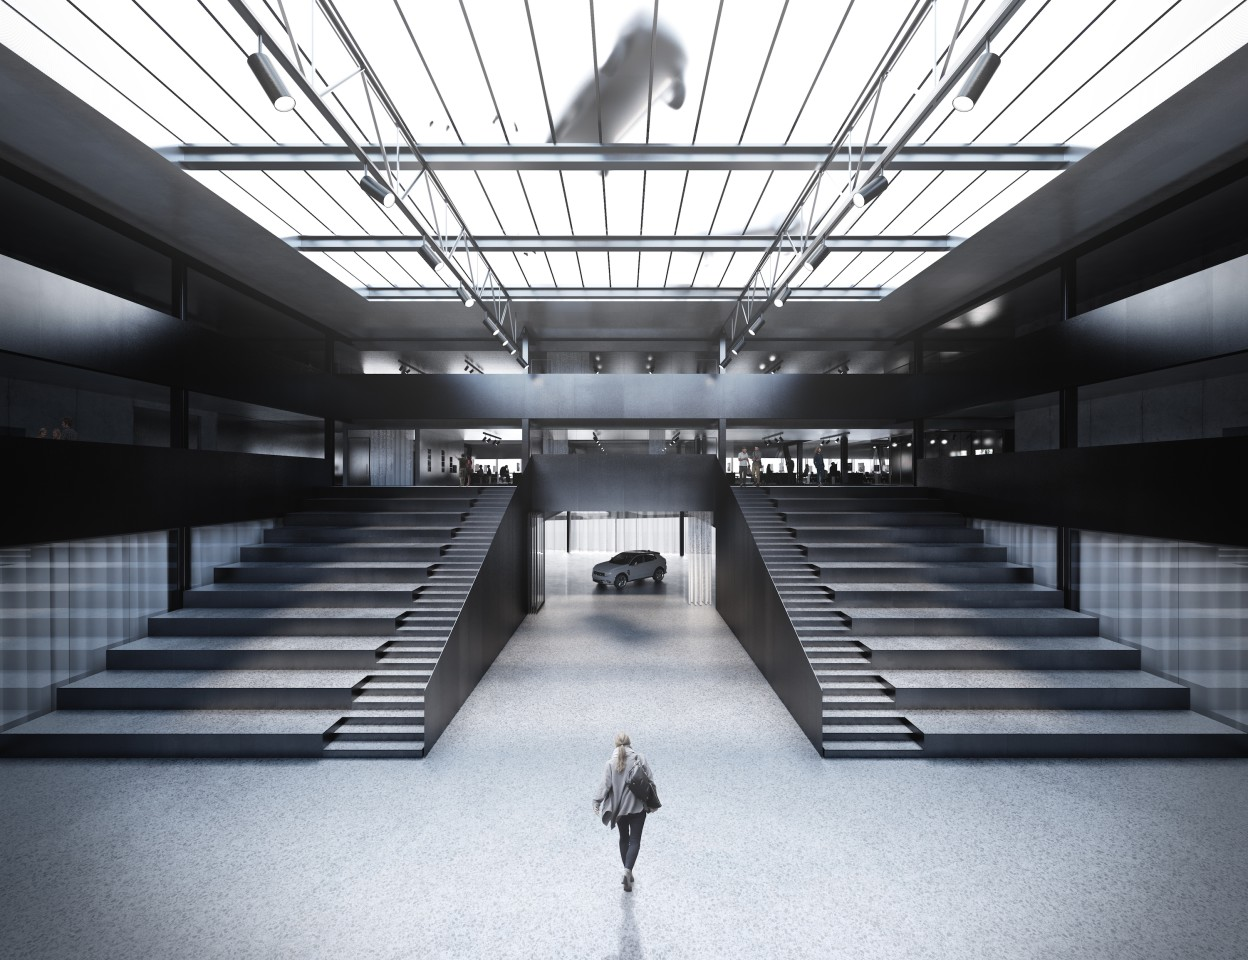 The Geely Design Center's secretive design laboratory will have a partially glazed floor